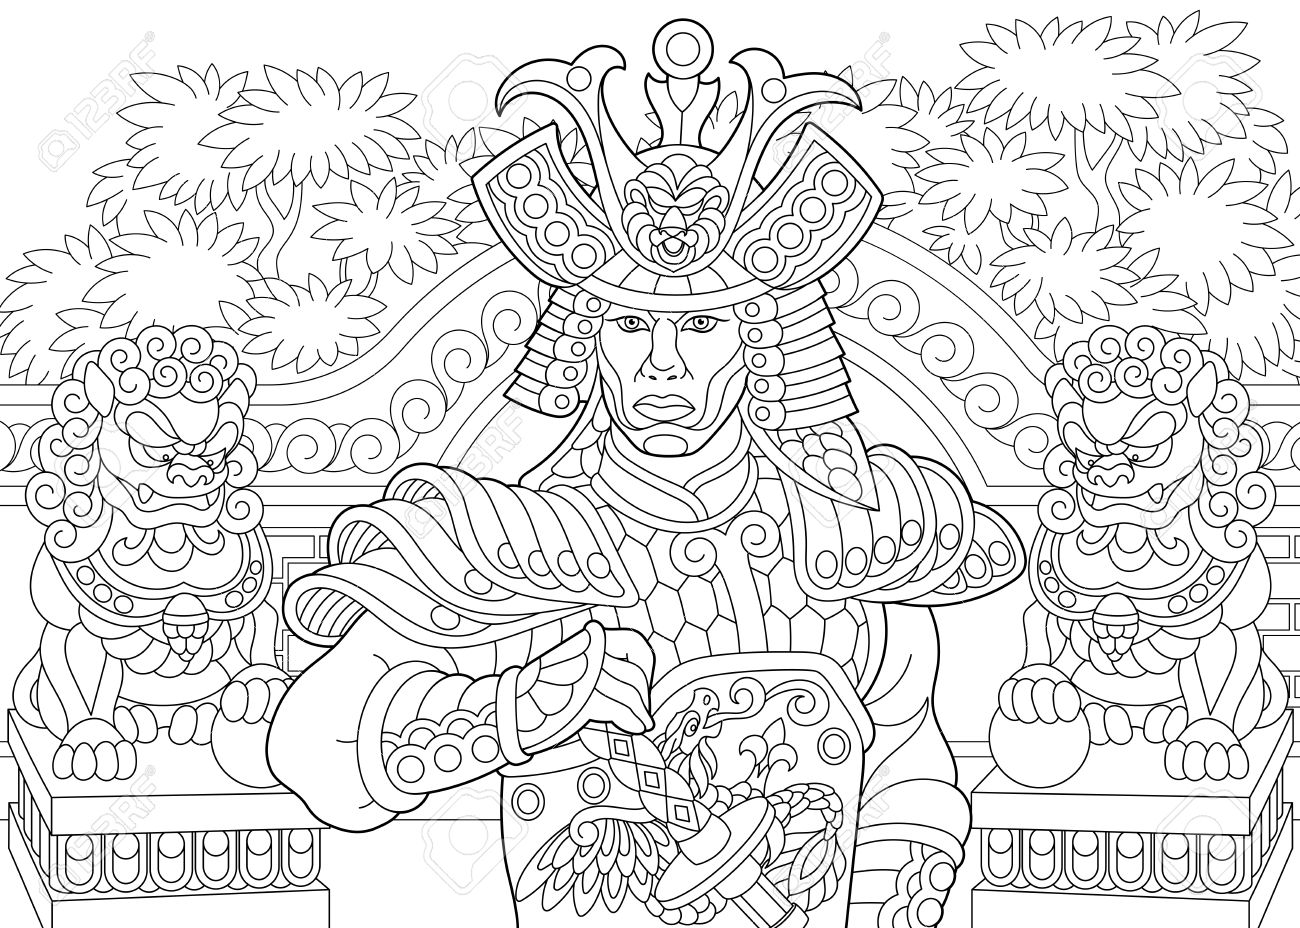 Antistress Coloring Book In Zentangle Style Page Of Japanese Samurai With Lion Statues On The Background Freehand Sketch Drawing For